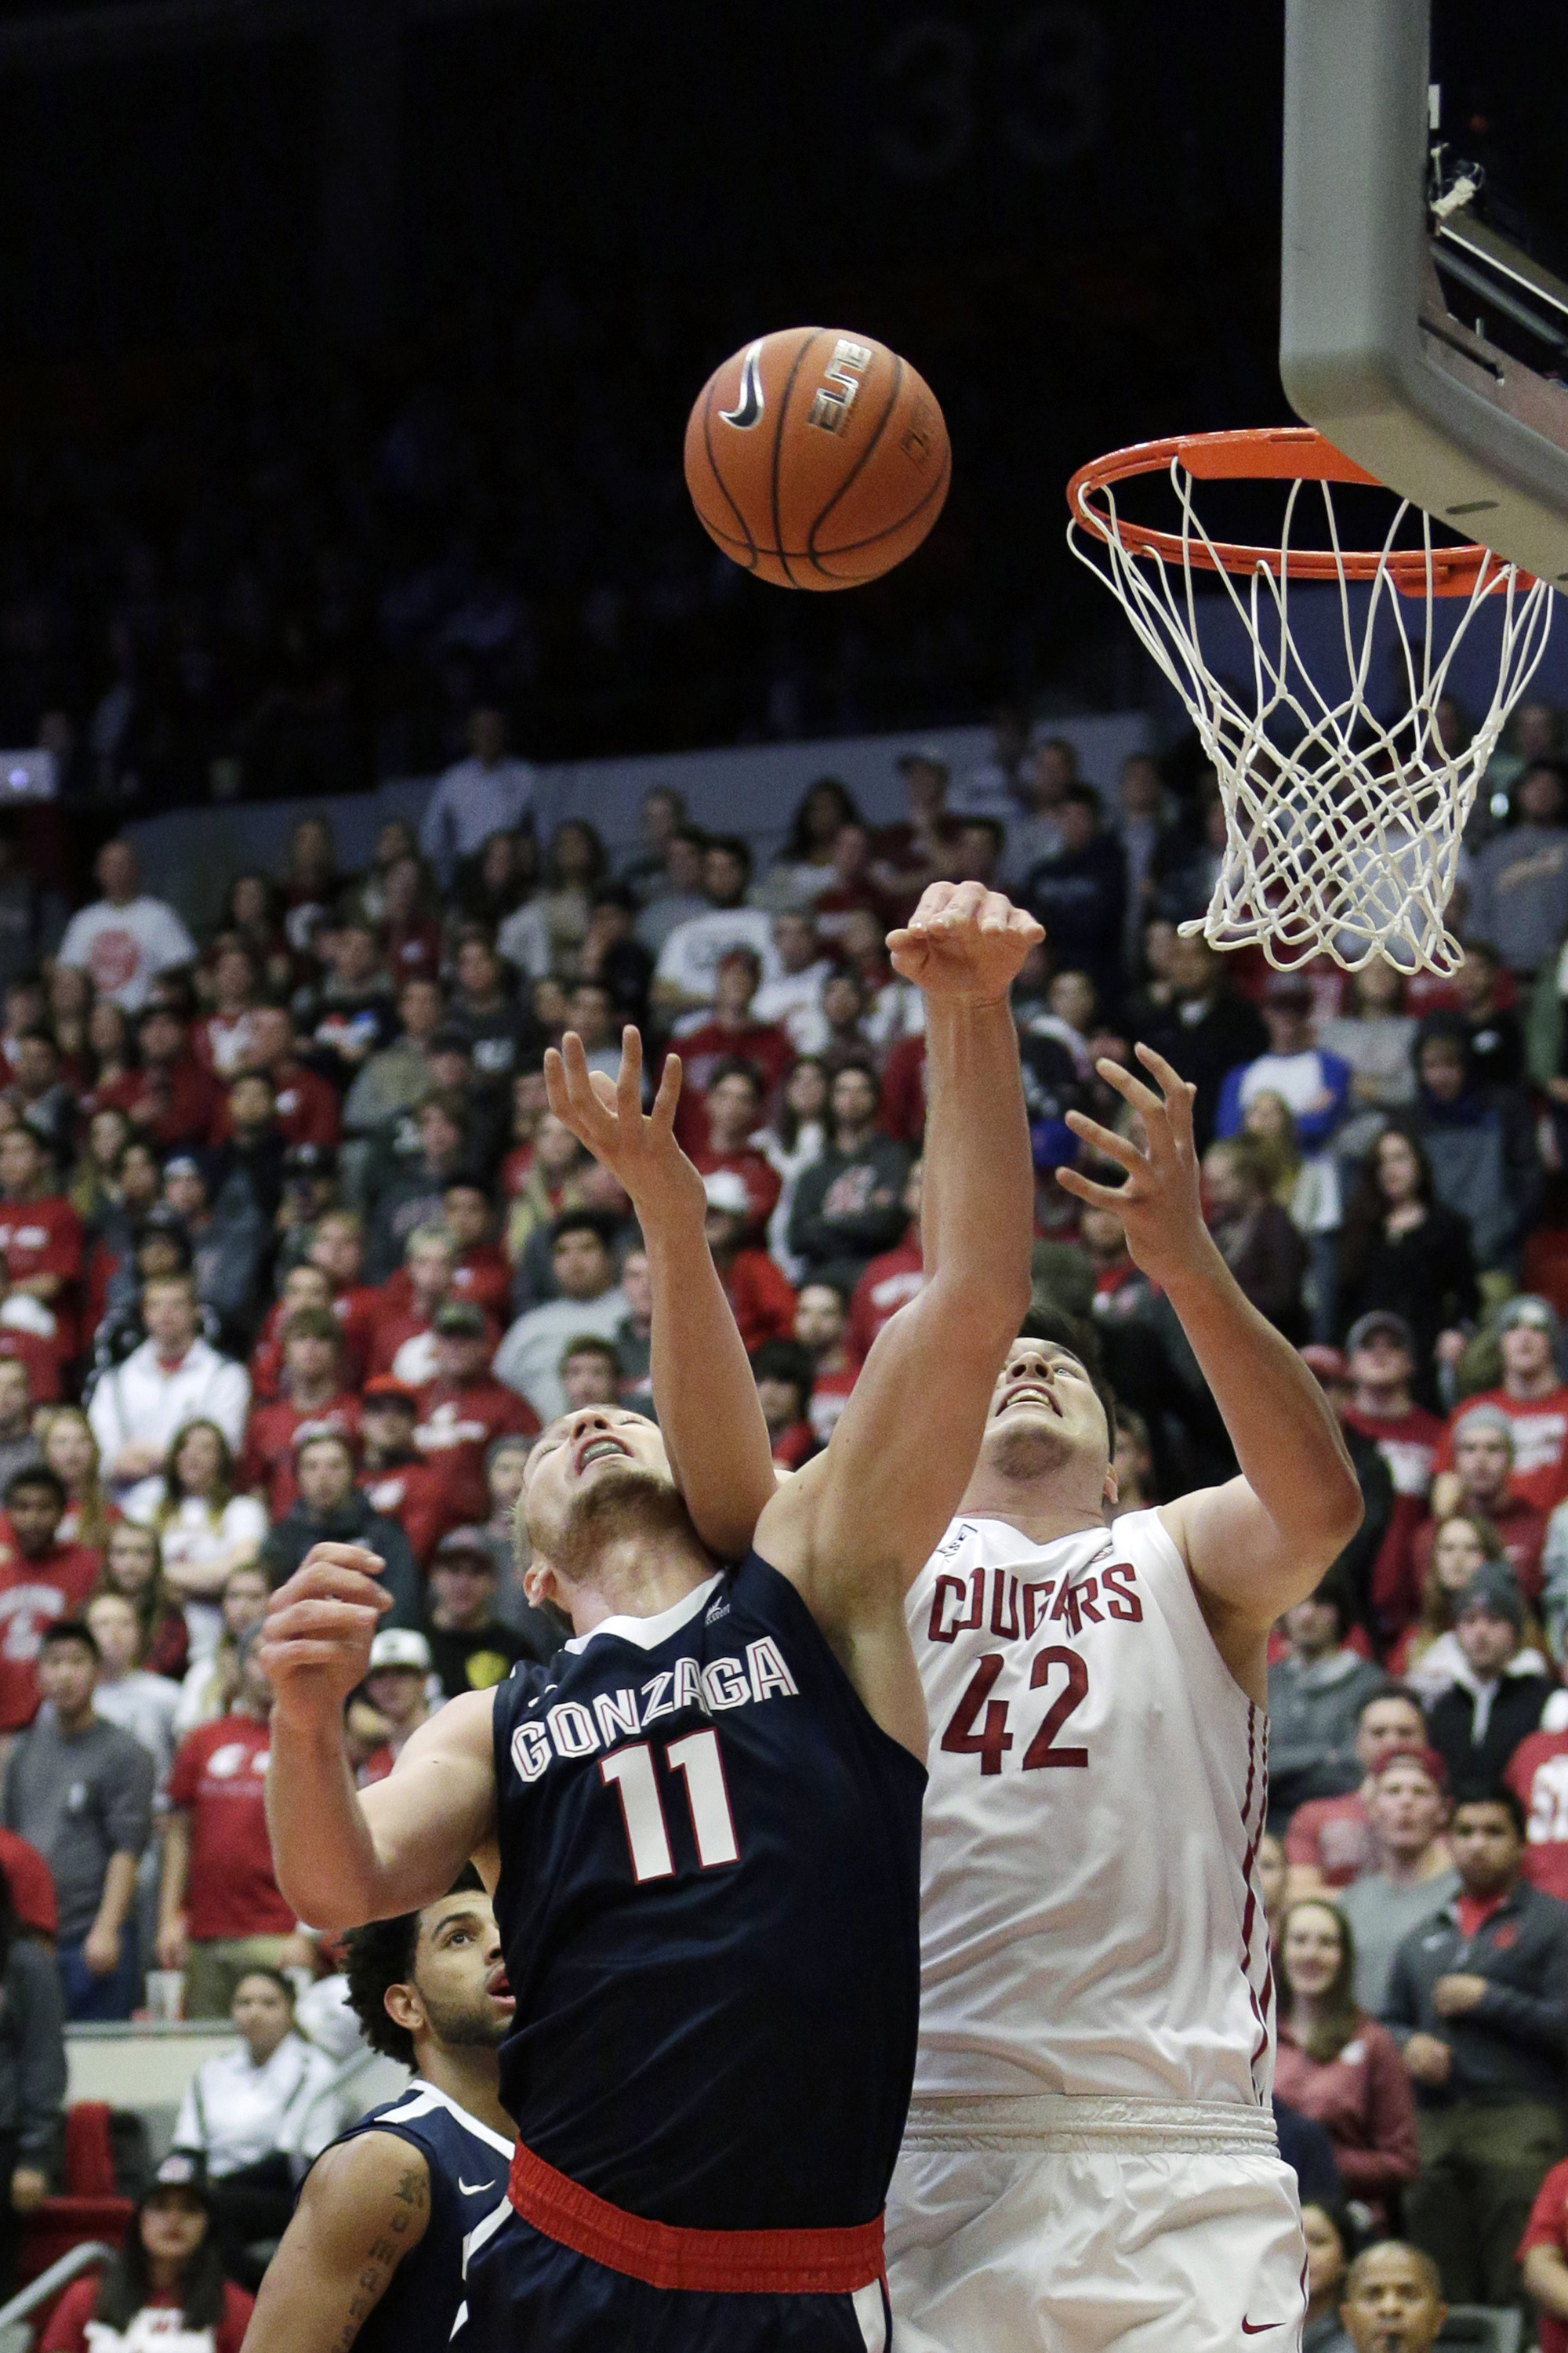 Gonzaga's Domantas Sabonis (11) and Washington State's Conor Clifford (42) go after a rebound during the first half of an NCAA college basketball game, Wednesday, Dec. 2, 2015, in Pullman, Wash. (AP Photo/Young Kwak)